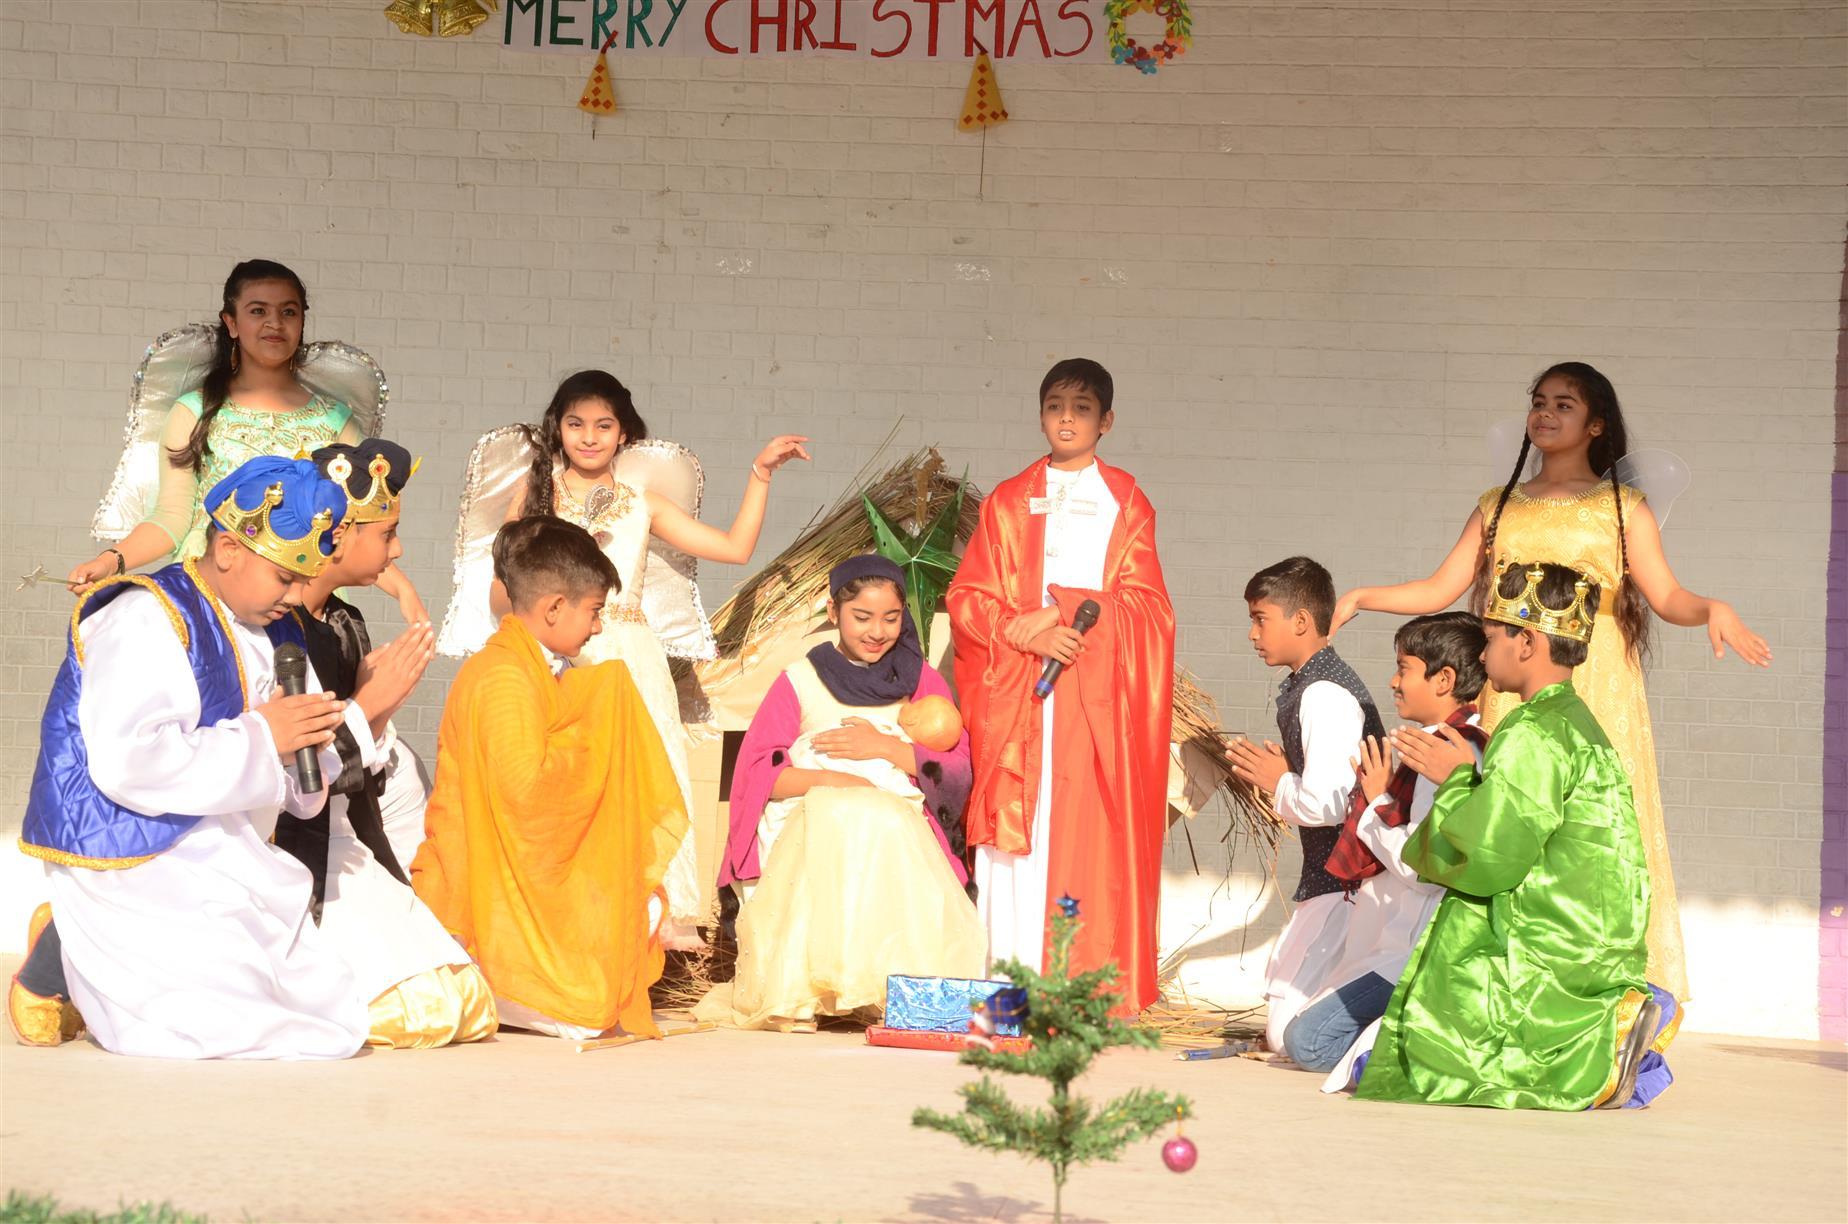 AKSIPS 41 Celebrates Christmas with great enthusiasm | AKSIPS 41 Chandigarh